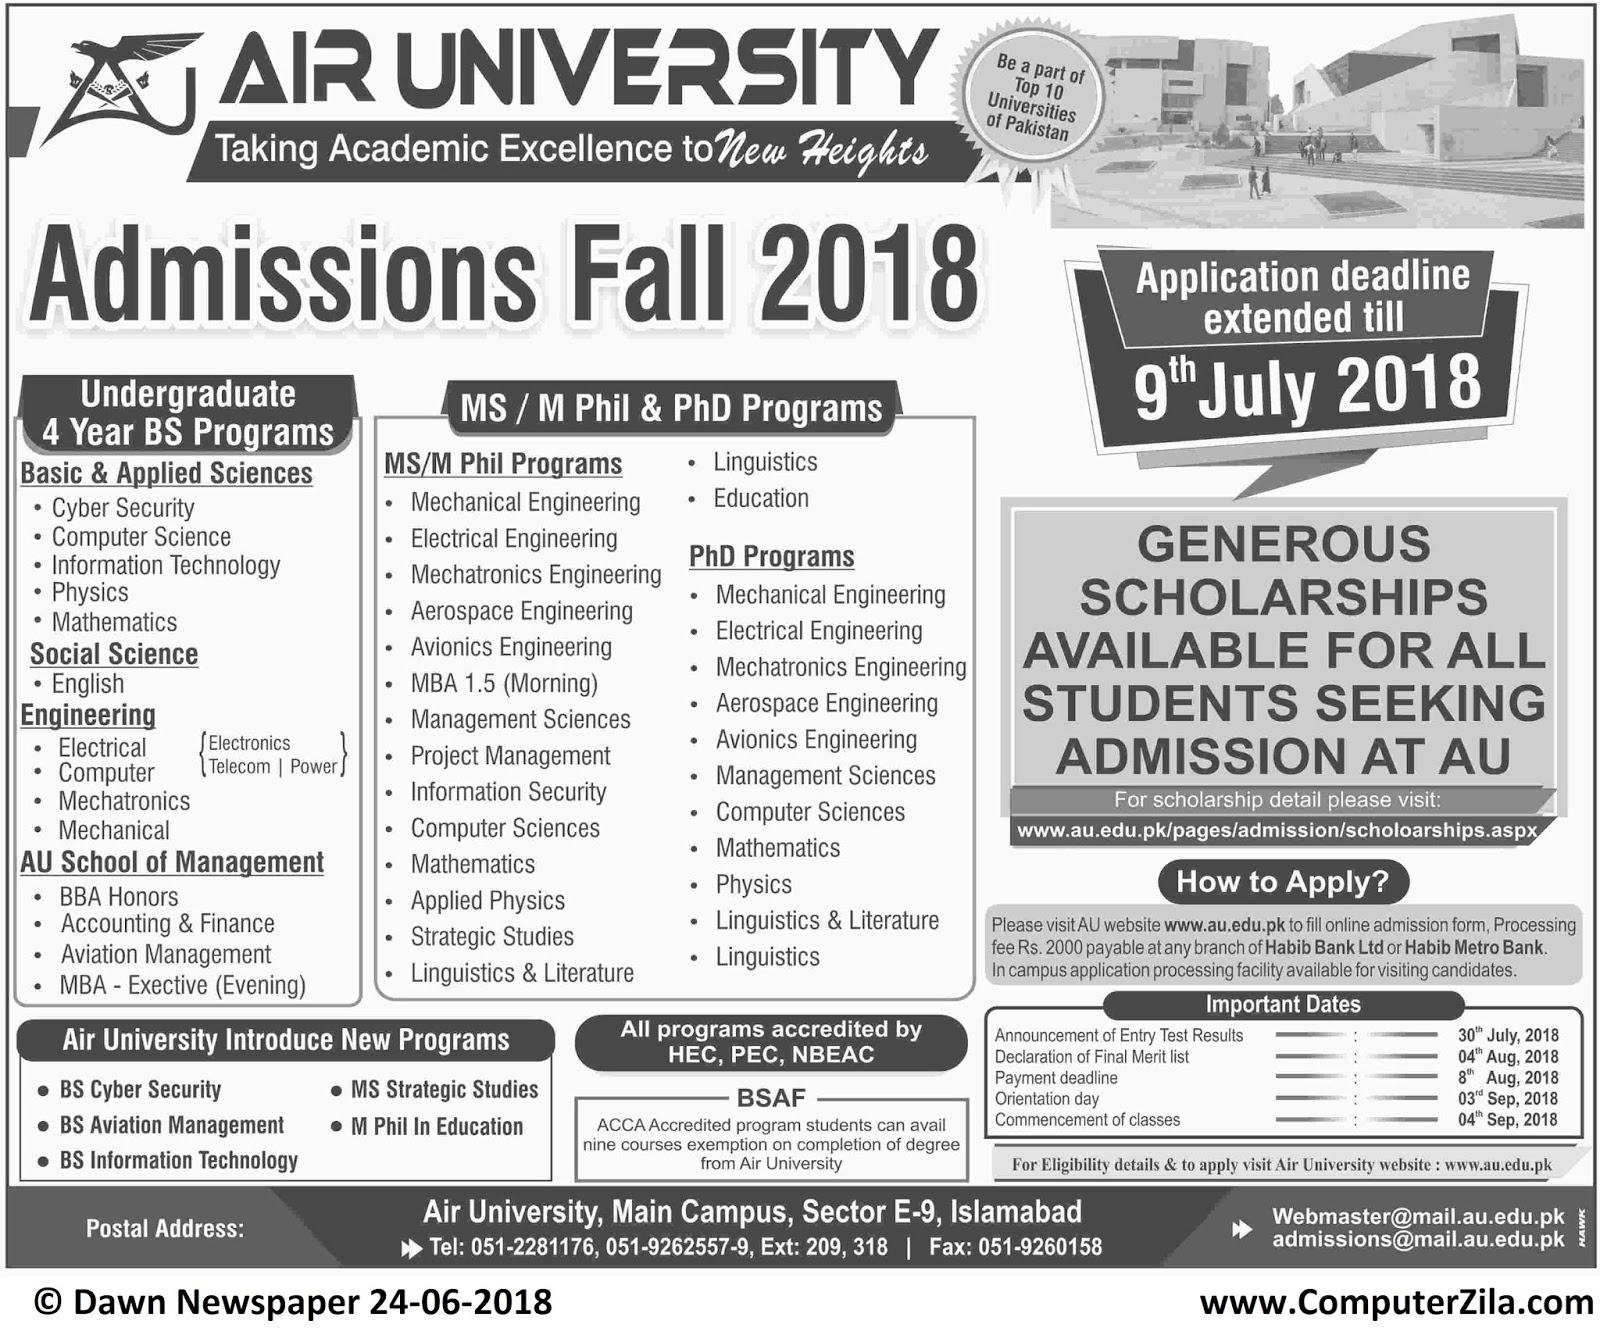 Air University Admissions Fall 2018 Date Extended